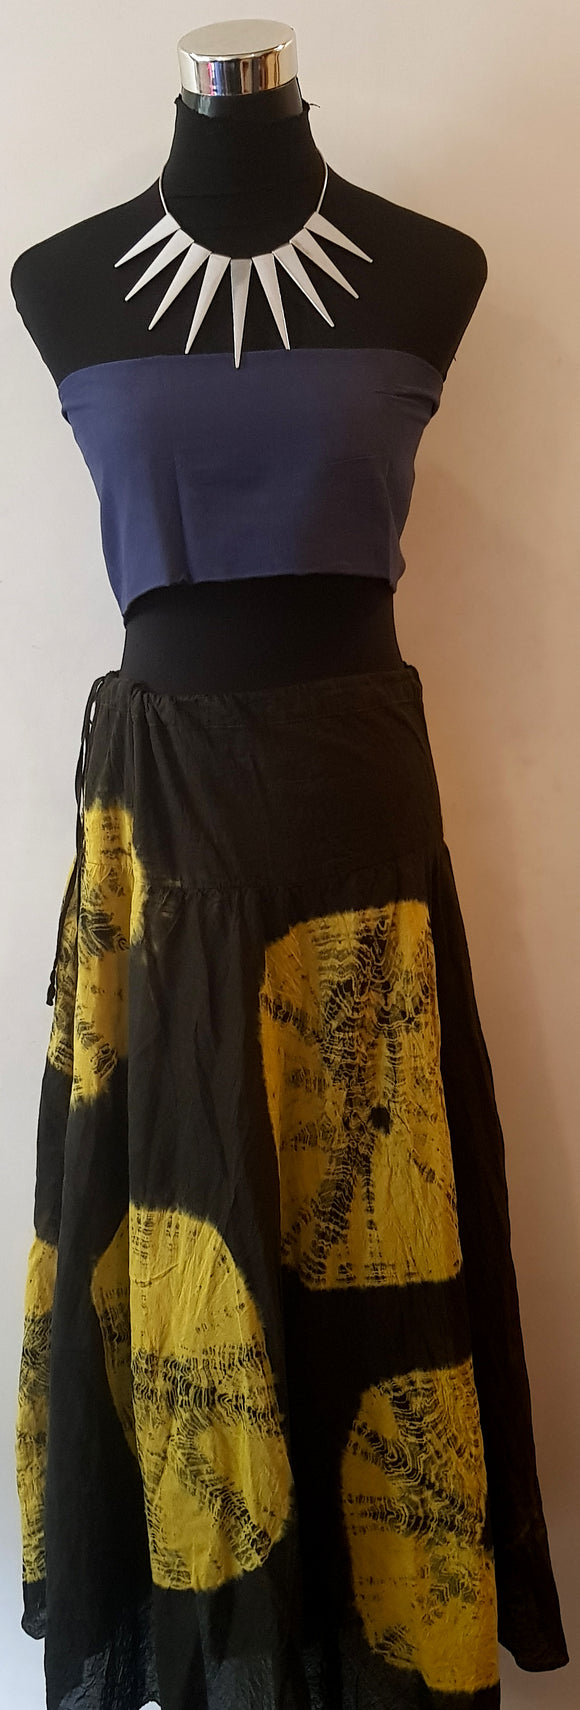 Shibori Black-Yellow Skirt (AOC)